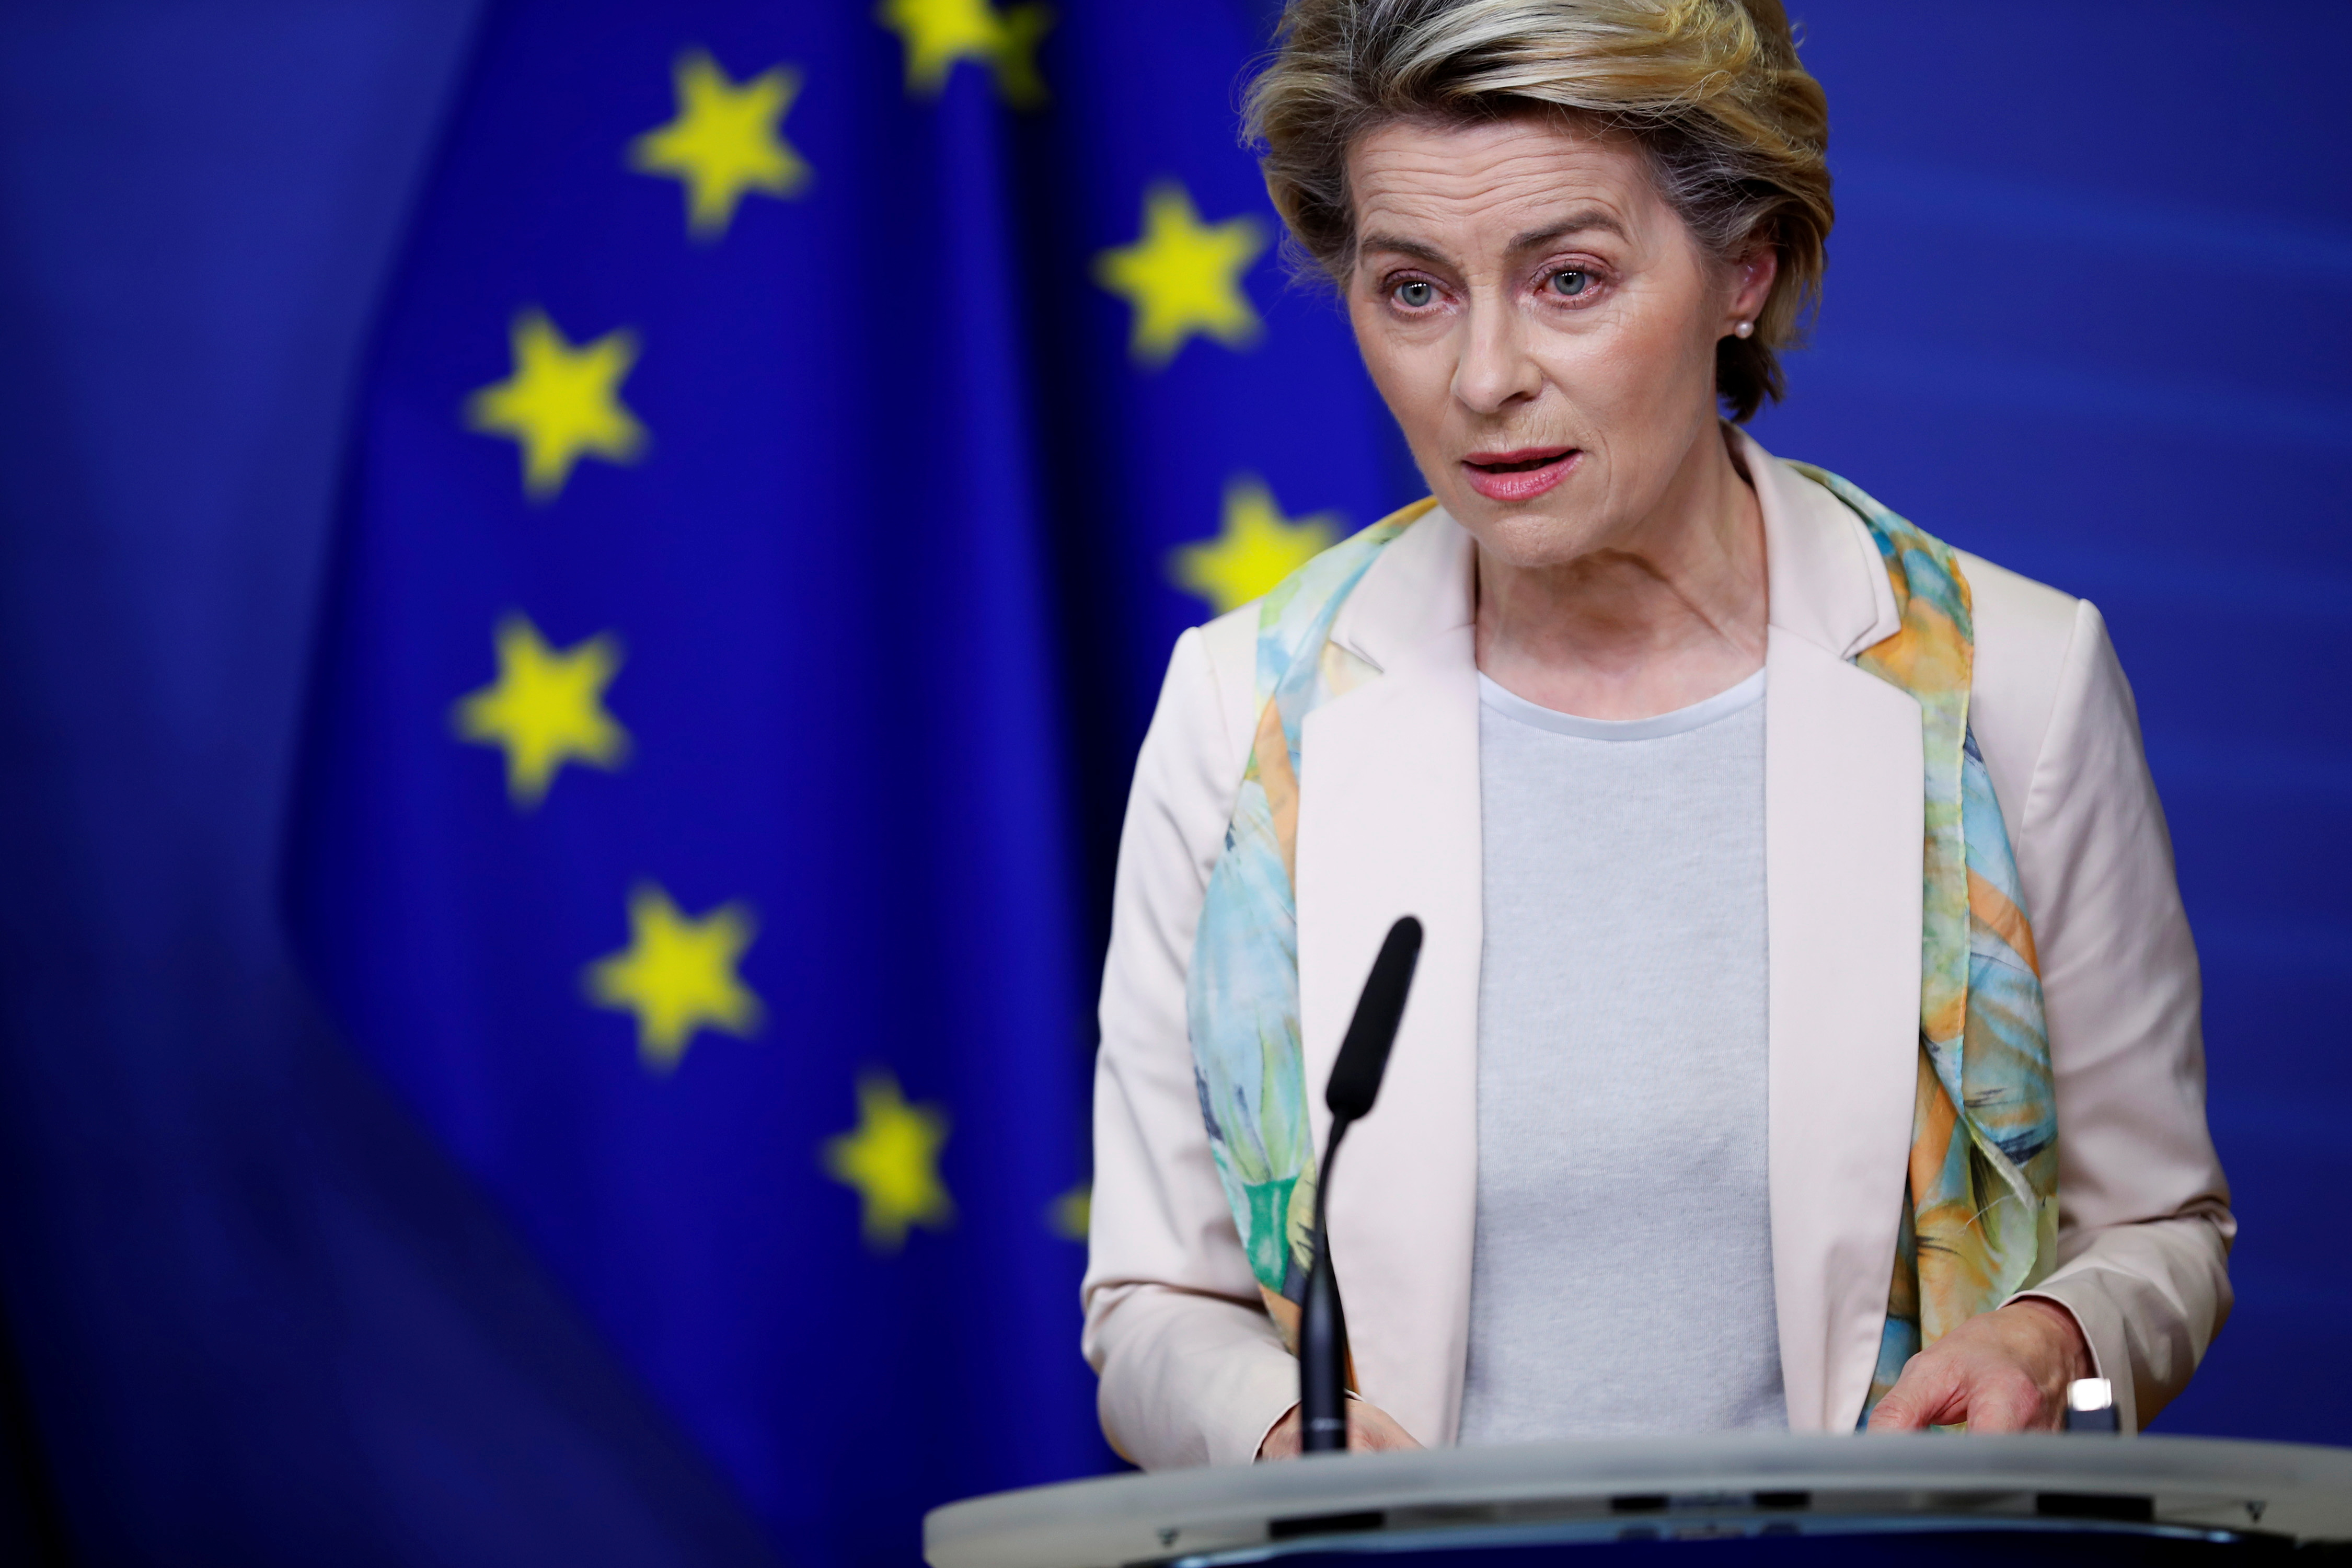 European Commission President Ursula von der Leyen gives a joint statement with NATO Secretary General Jens Stoltenberg before they attend a College of Commissioners meeting at the European Commission headquarters in Brussels, Belgium, December 15, 2020. Francisco Seco/Pool via REUTERS